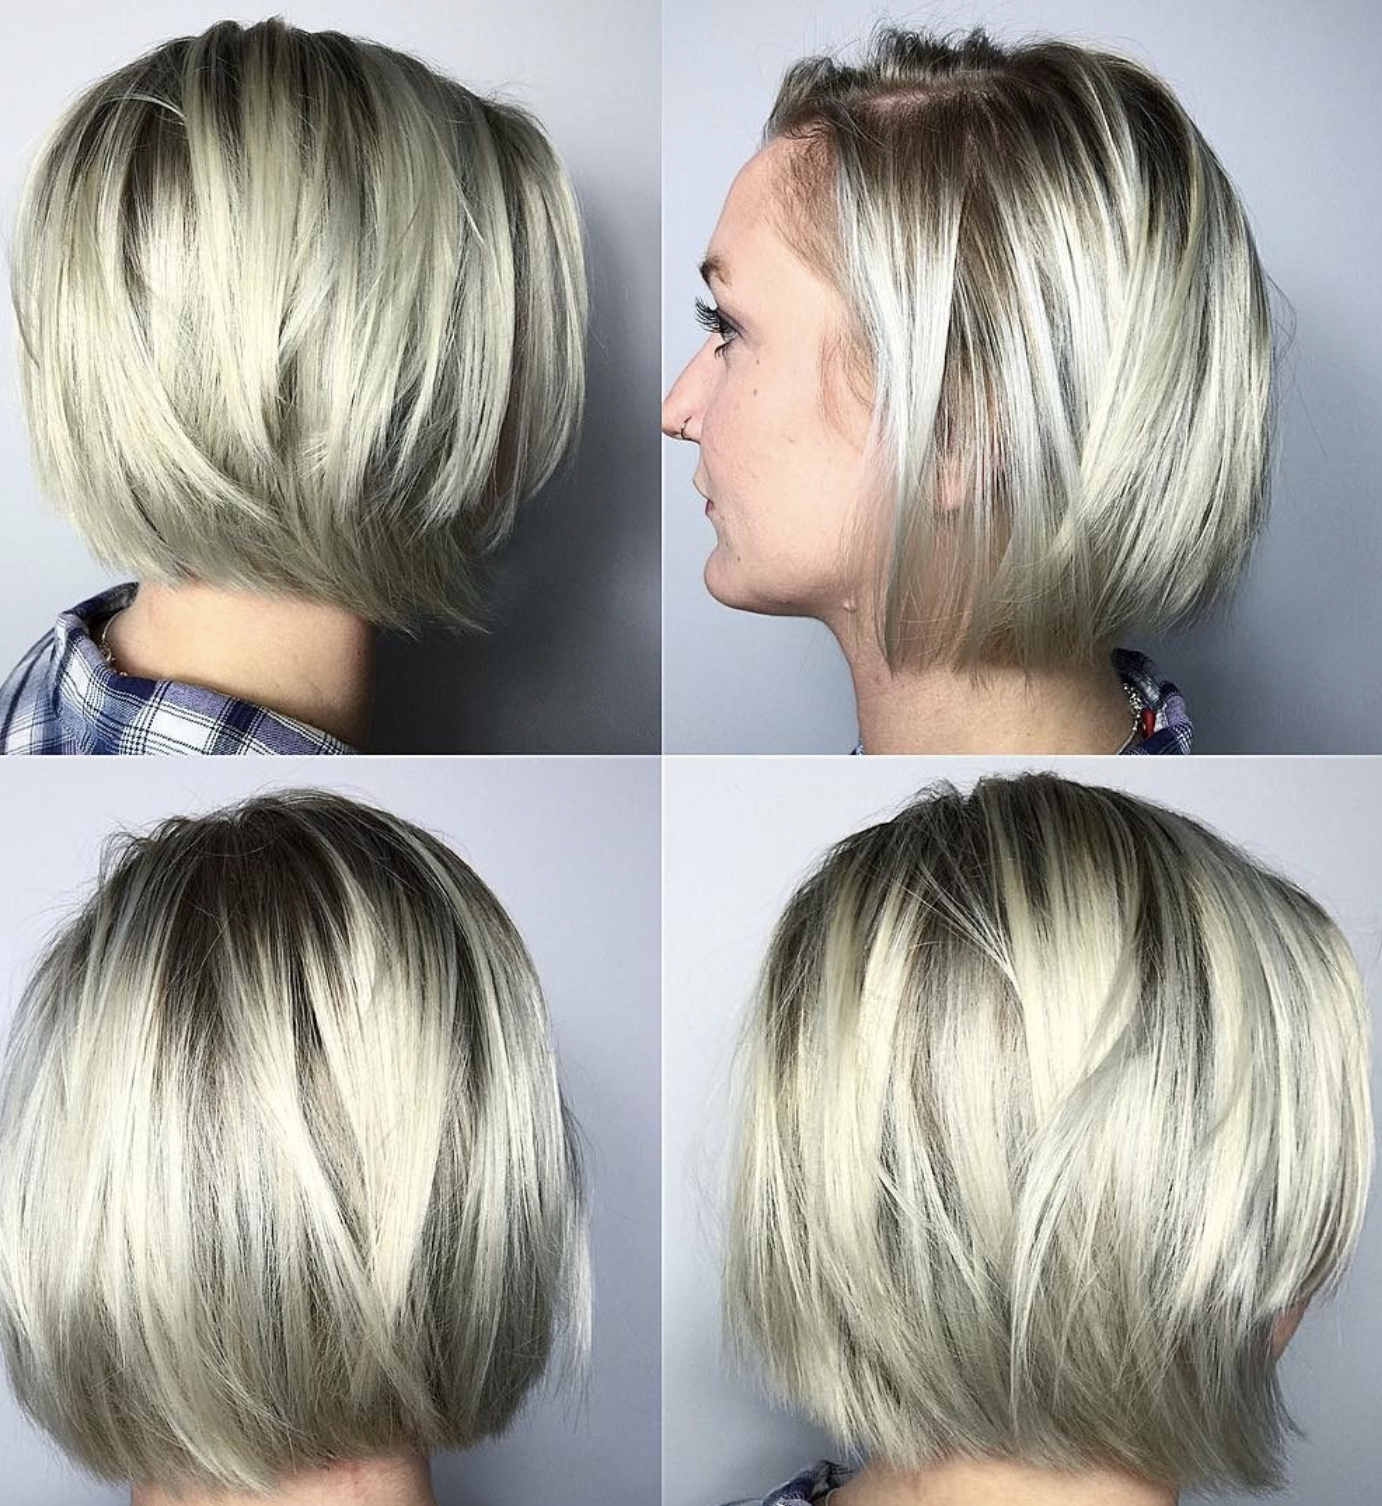 Trendy Rounded Short Bob Hairstyles Pertaining To Short Bob Hairstyle For Fine Hair 2019 You Must Try (View 17 of 20)